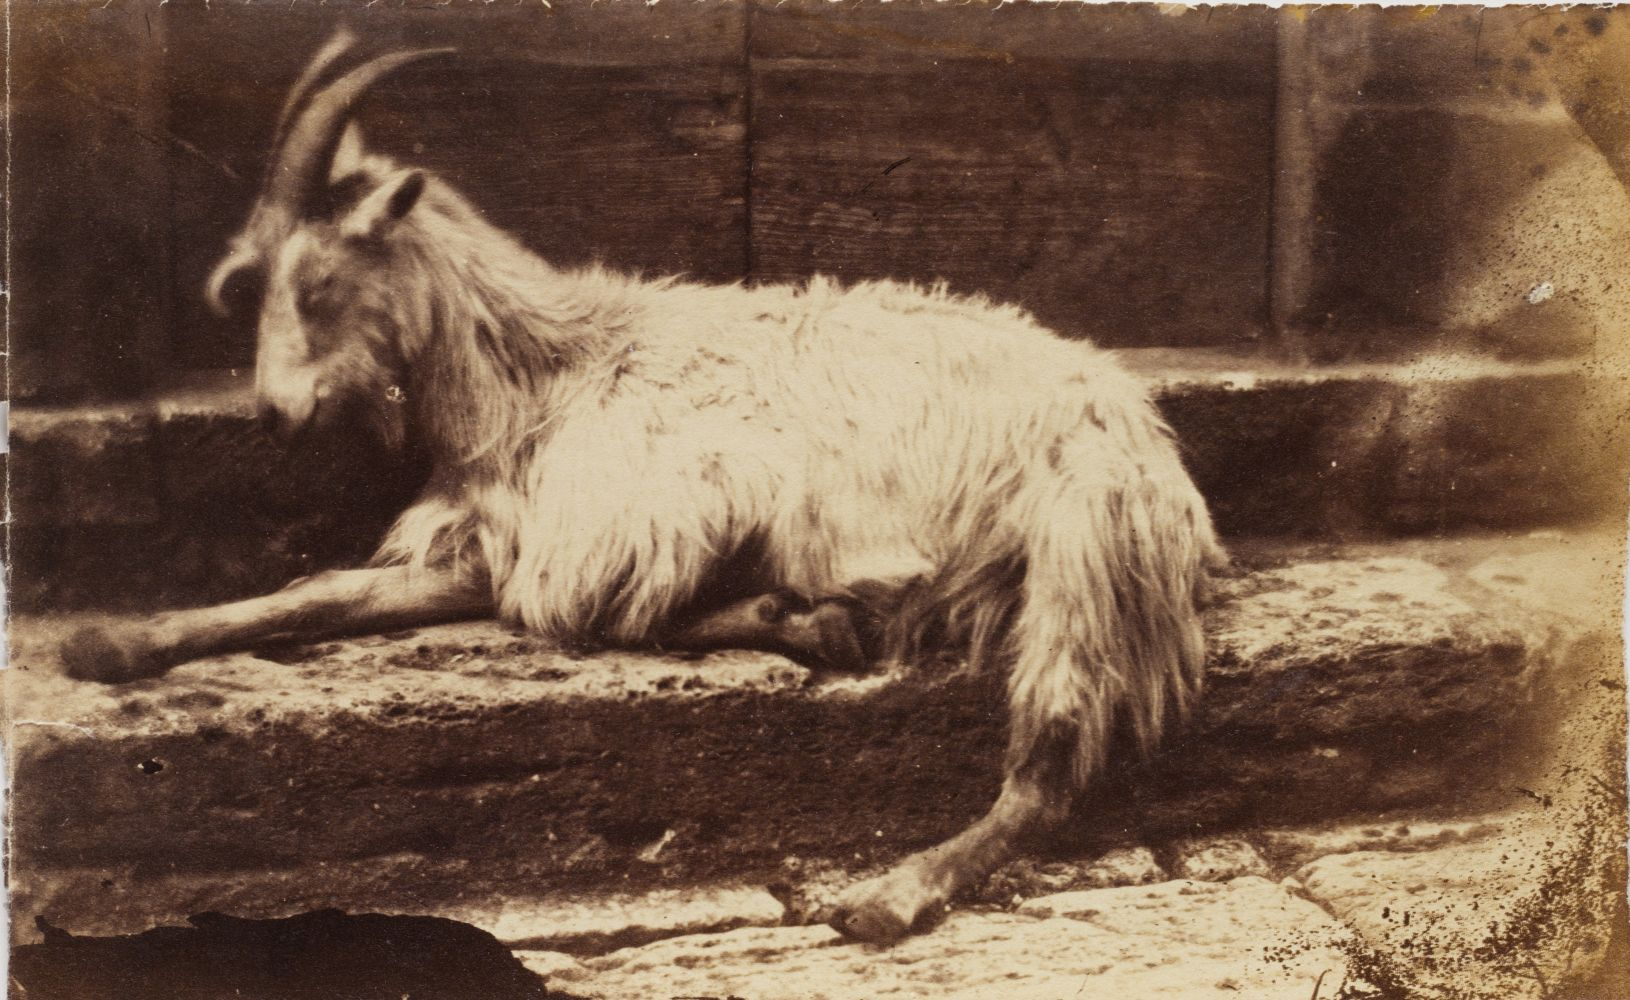 Circle of Giacomo CANEVA (Italian, 1813-1865) Reclining goat in Rome, 1850s Albumen print from a collodion negative 13.3 x 21.3 cm